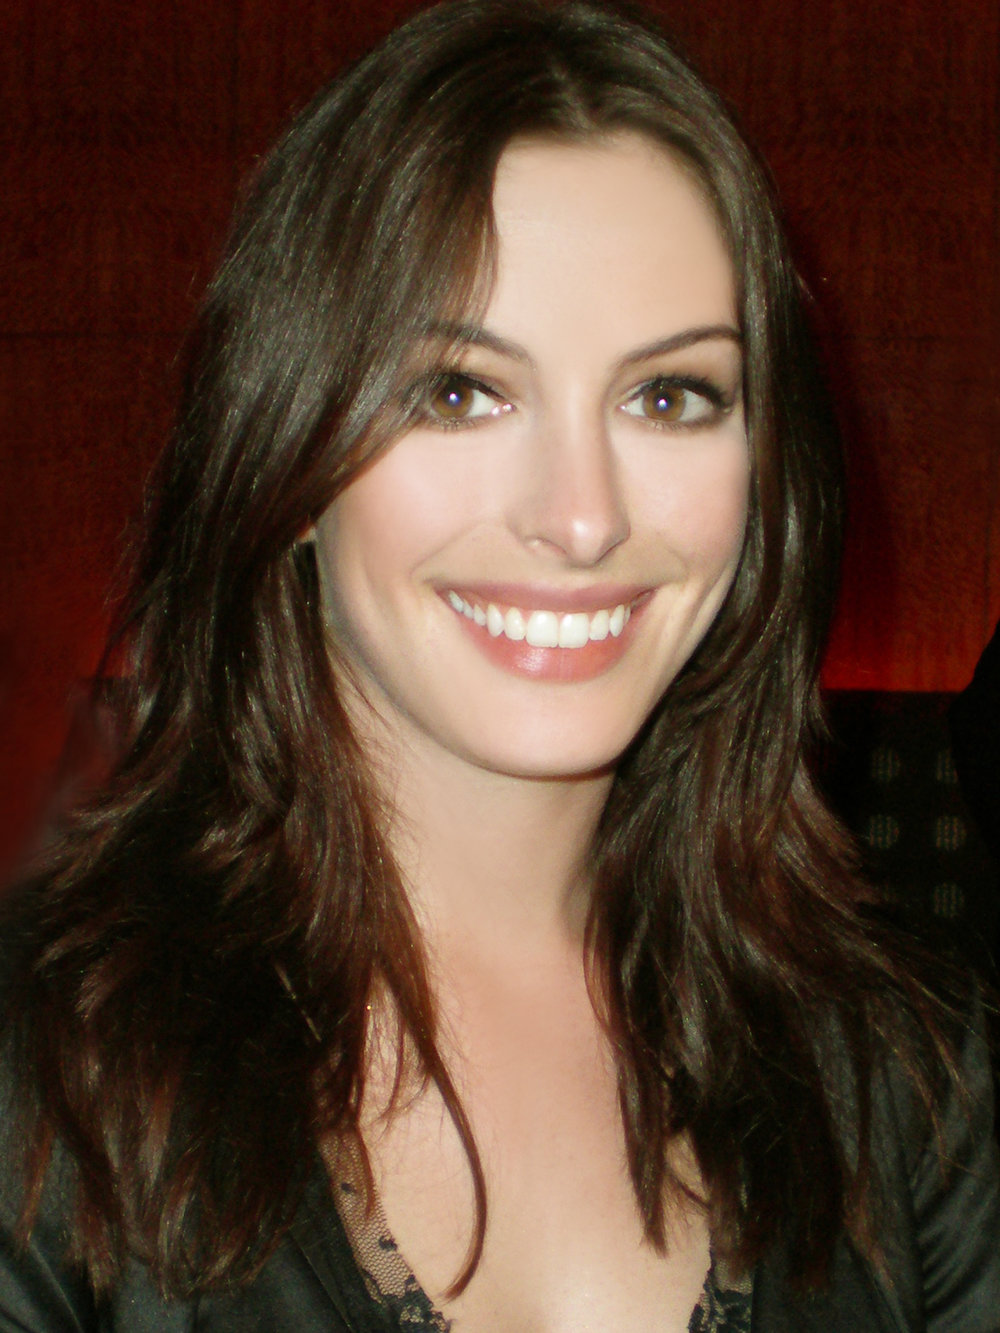 ANNE HATHAWAY | ACTRESS